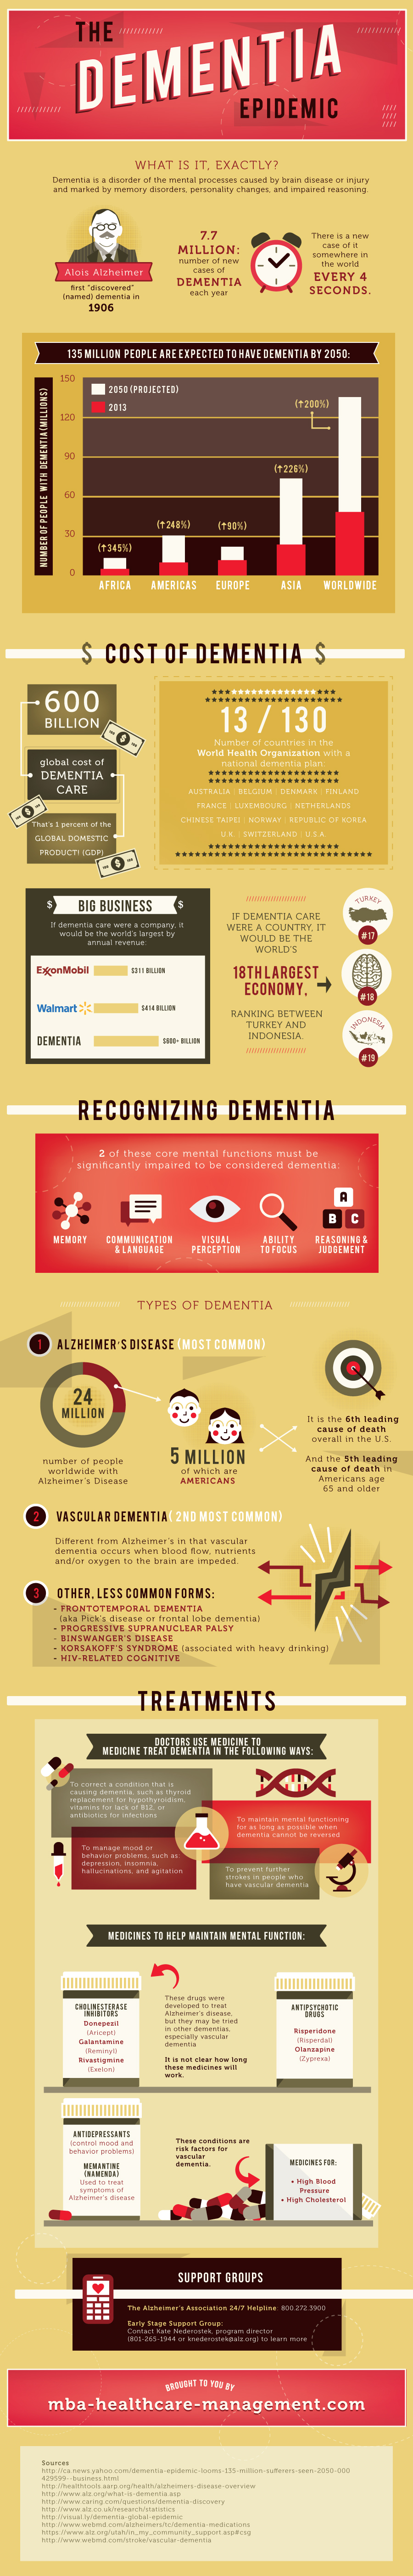 The Dementia Epidemic